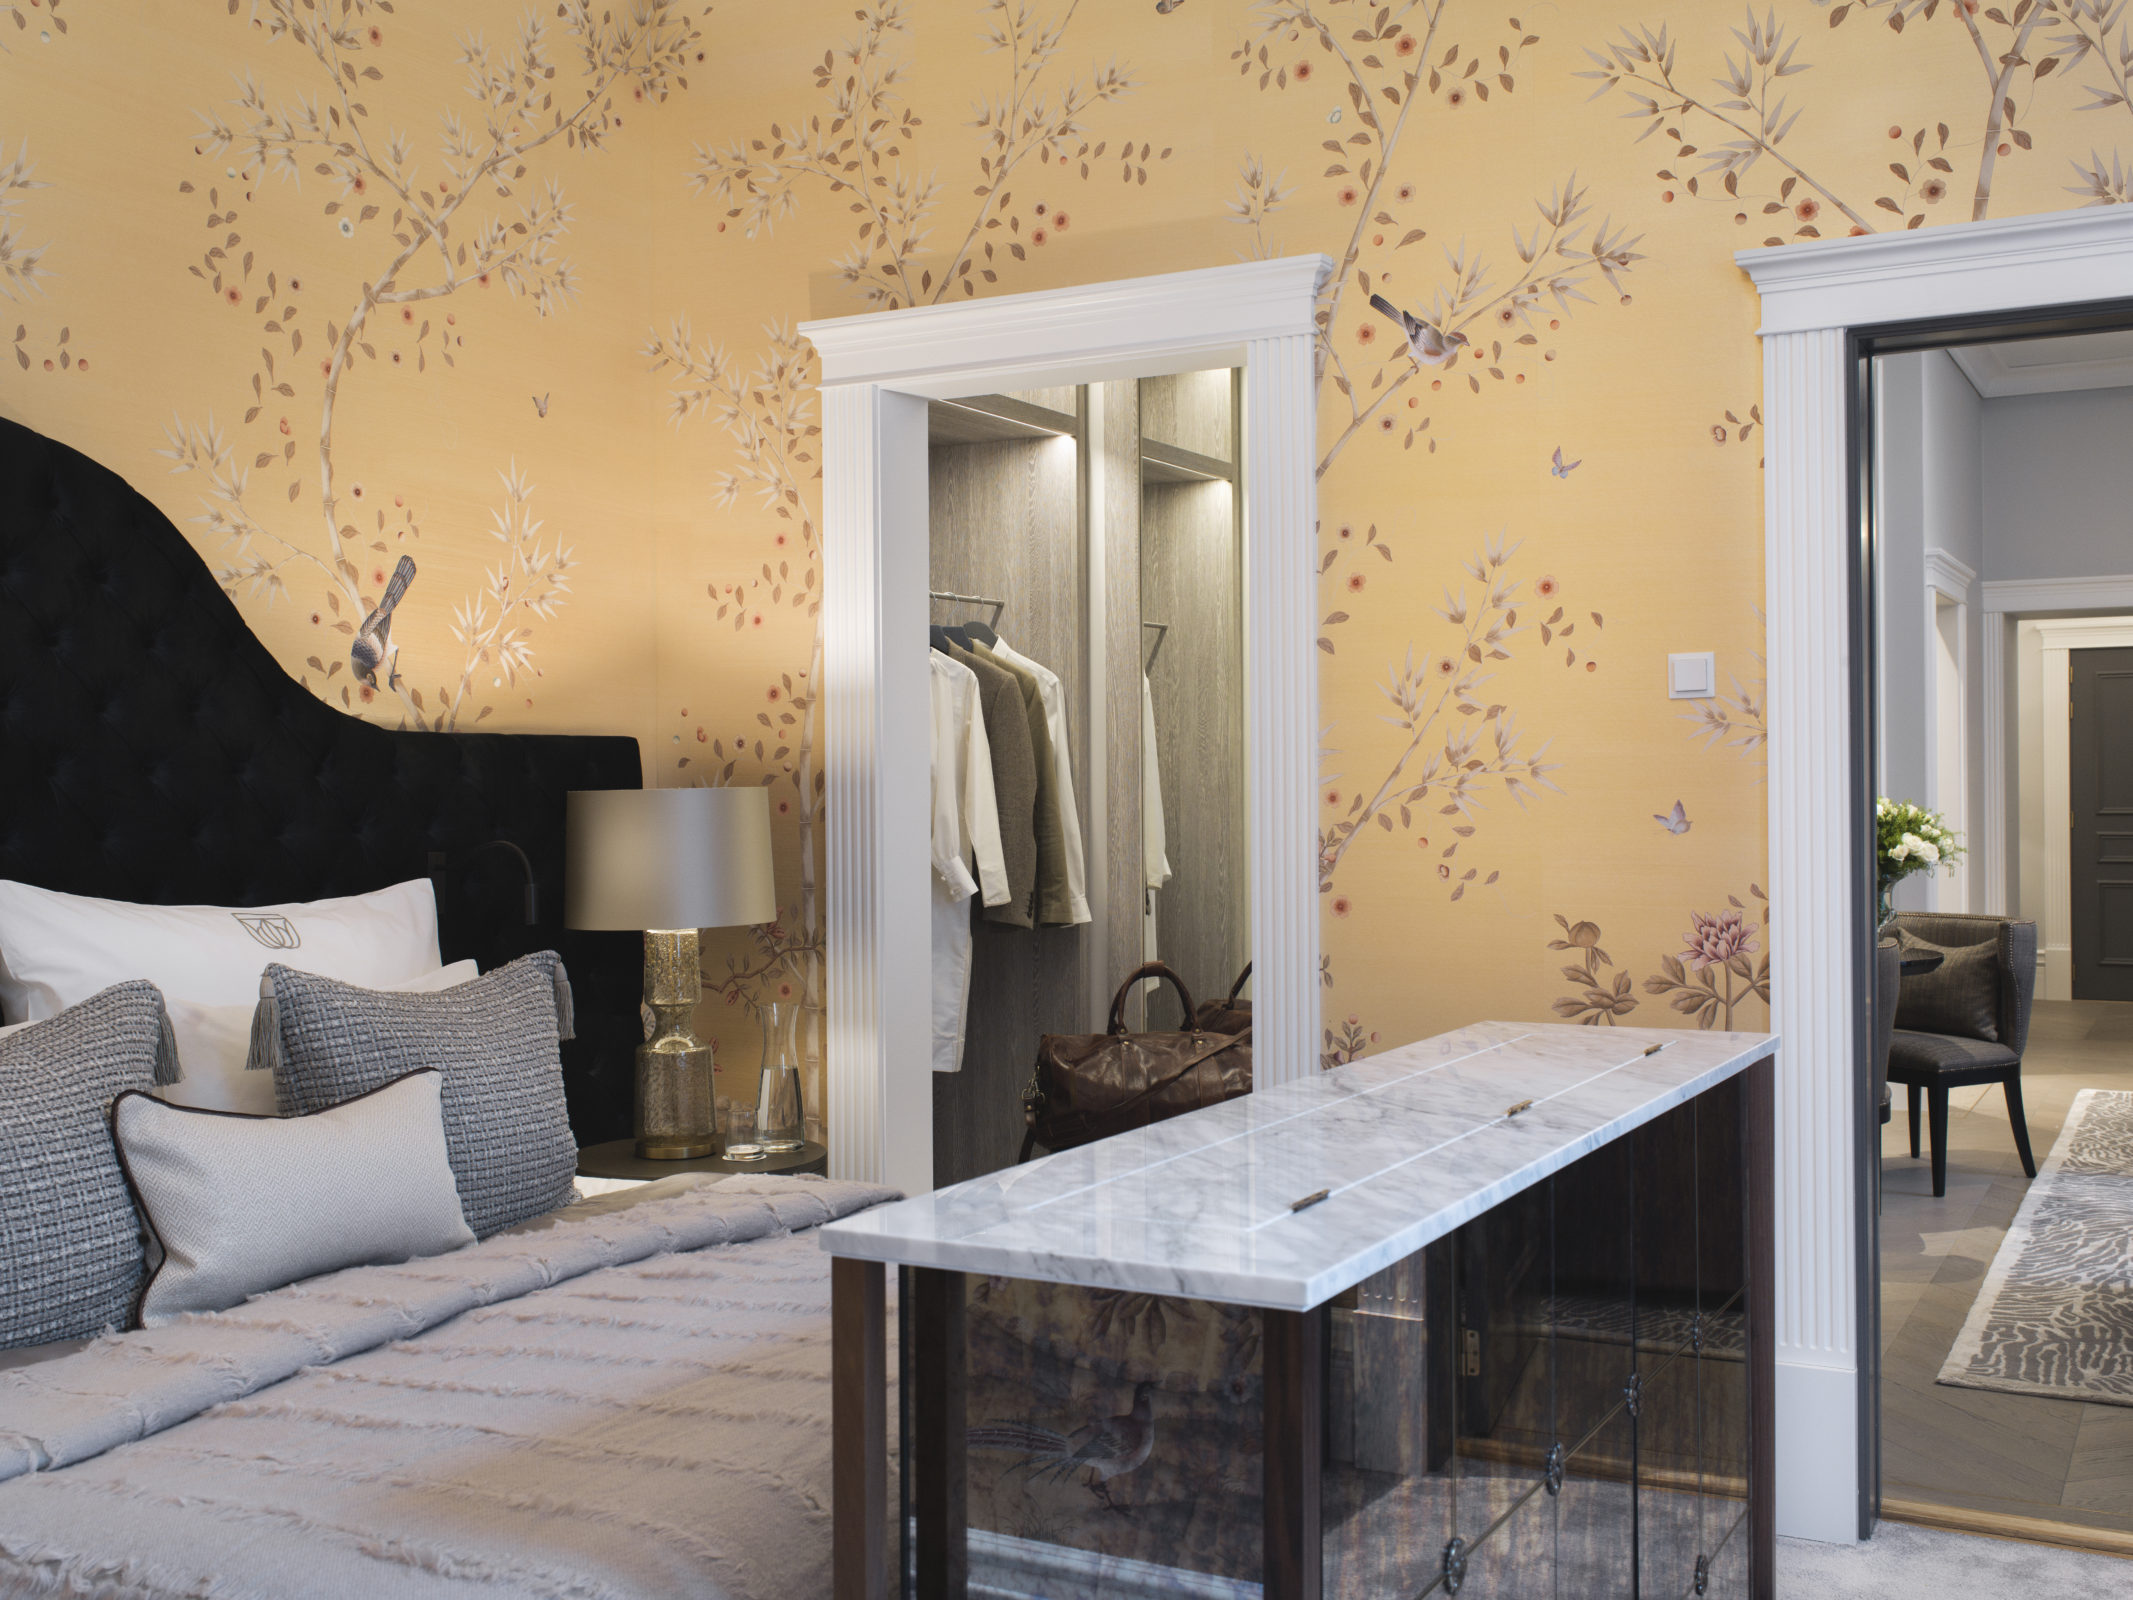 Britannia Hotel in Trondheim's Signature Suite styled by Metropolis Interior Architects. Detail of bed and walk wardrobe behind, with marble topped retractable TV in the foreground. Bed by Hästens.